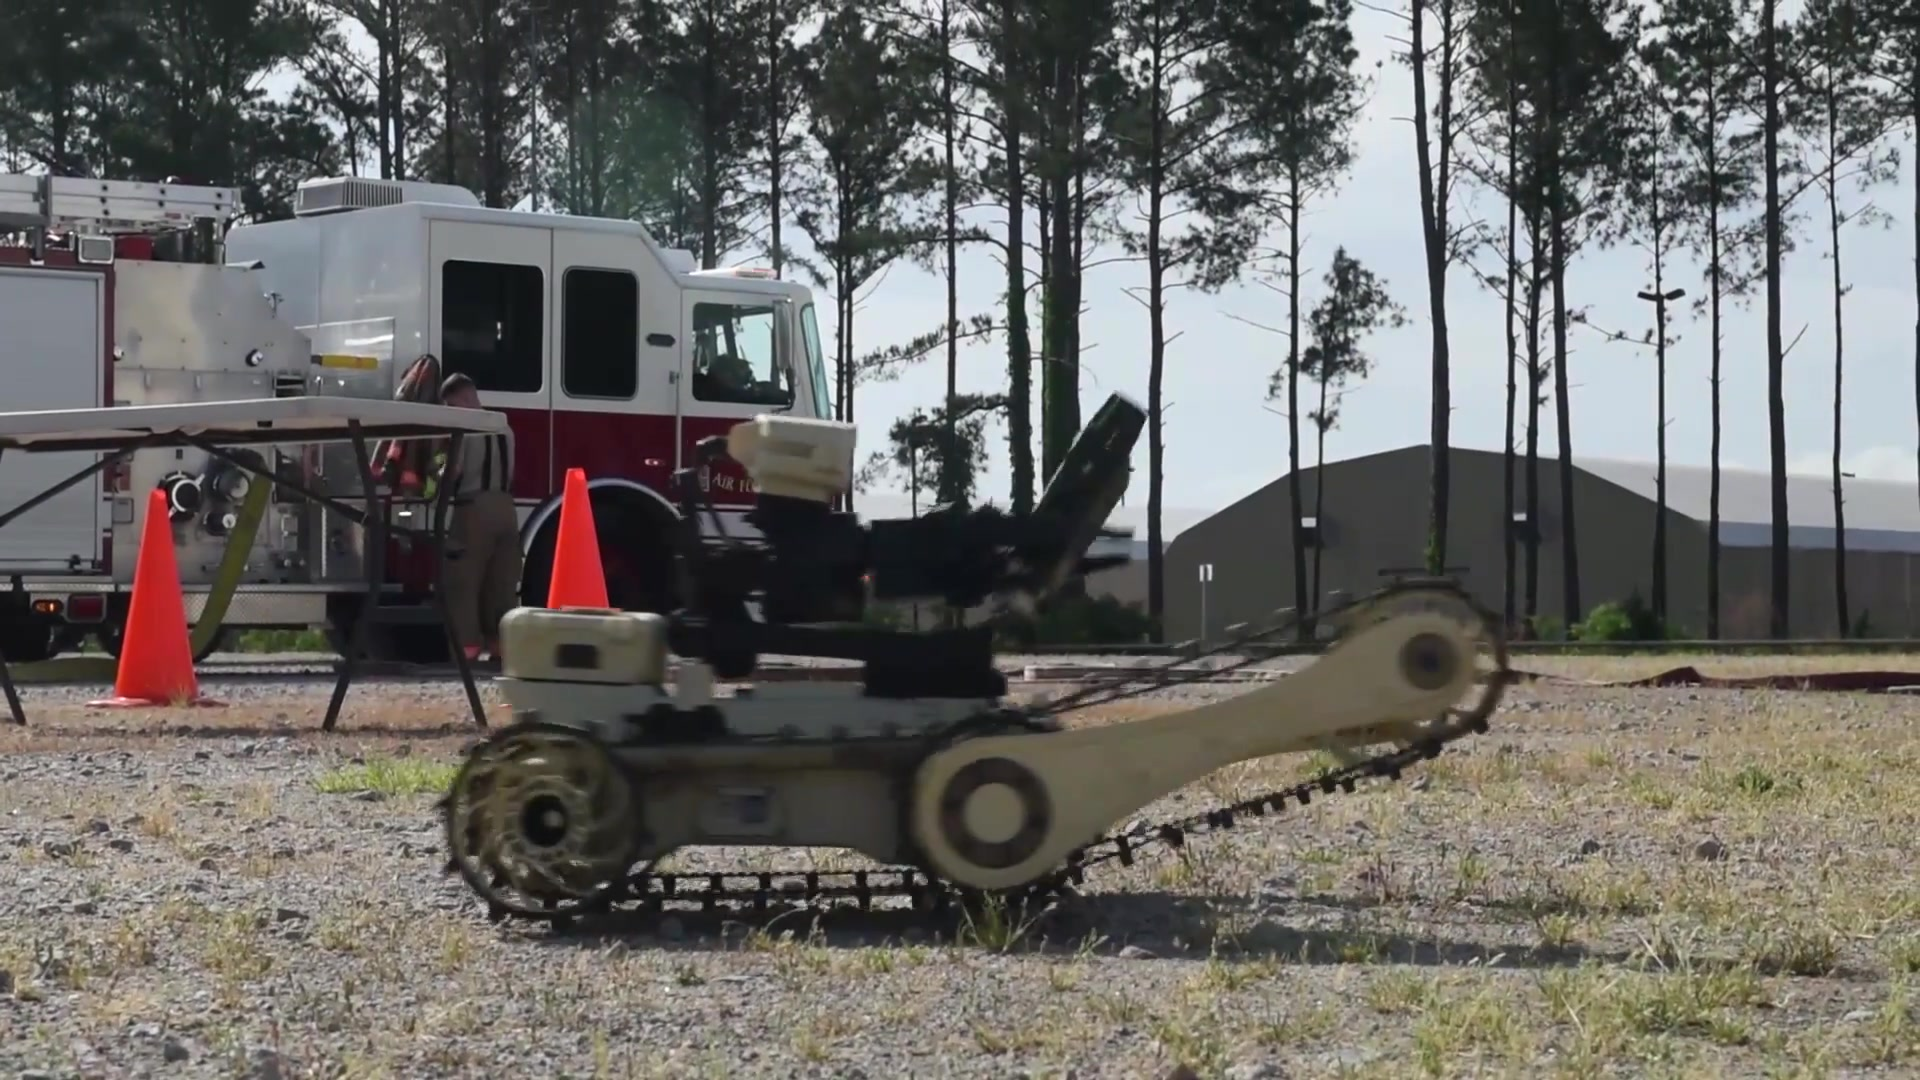 Three flights assigned to the 20th Civil Engineer Squadron participated in a readiness exercise at the fire training grounds at Shaw Air Force Base, South Carolina, May 2.